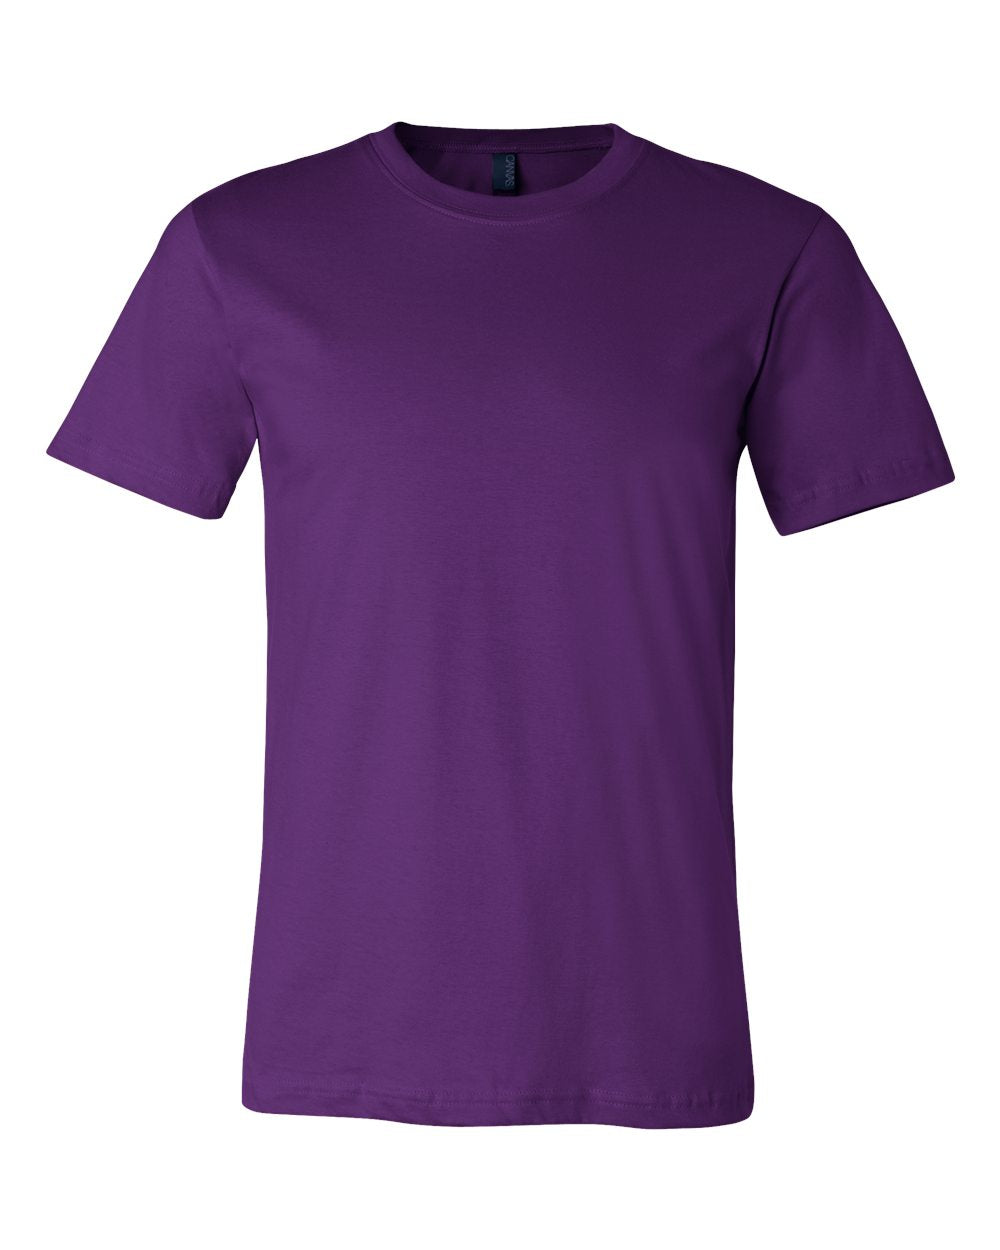 Bella + Canvas - Unisex Short Sleeve Jersey Tee - Full Color - 3001